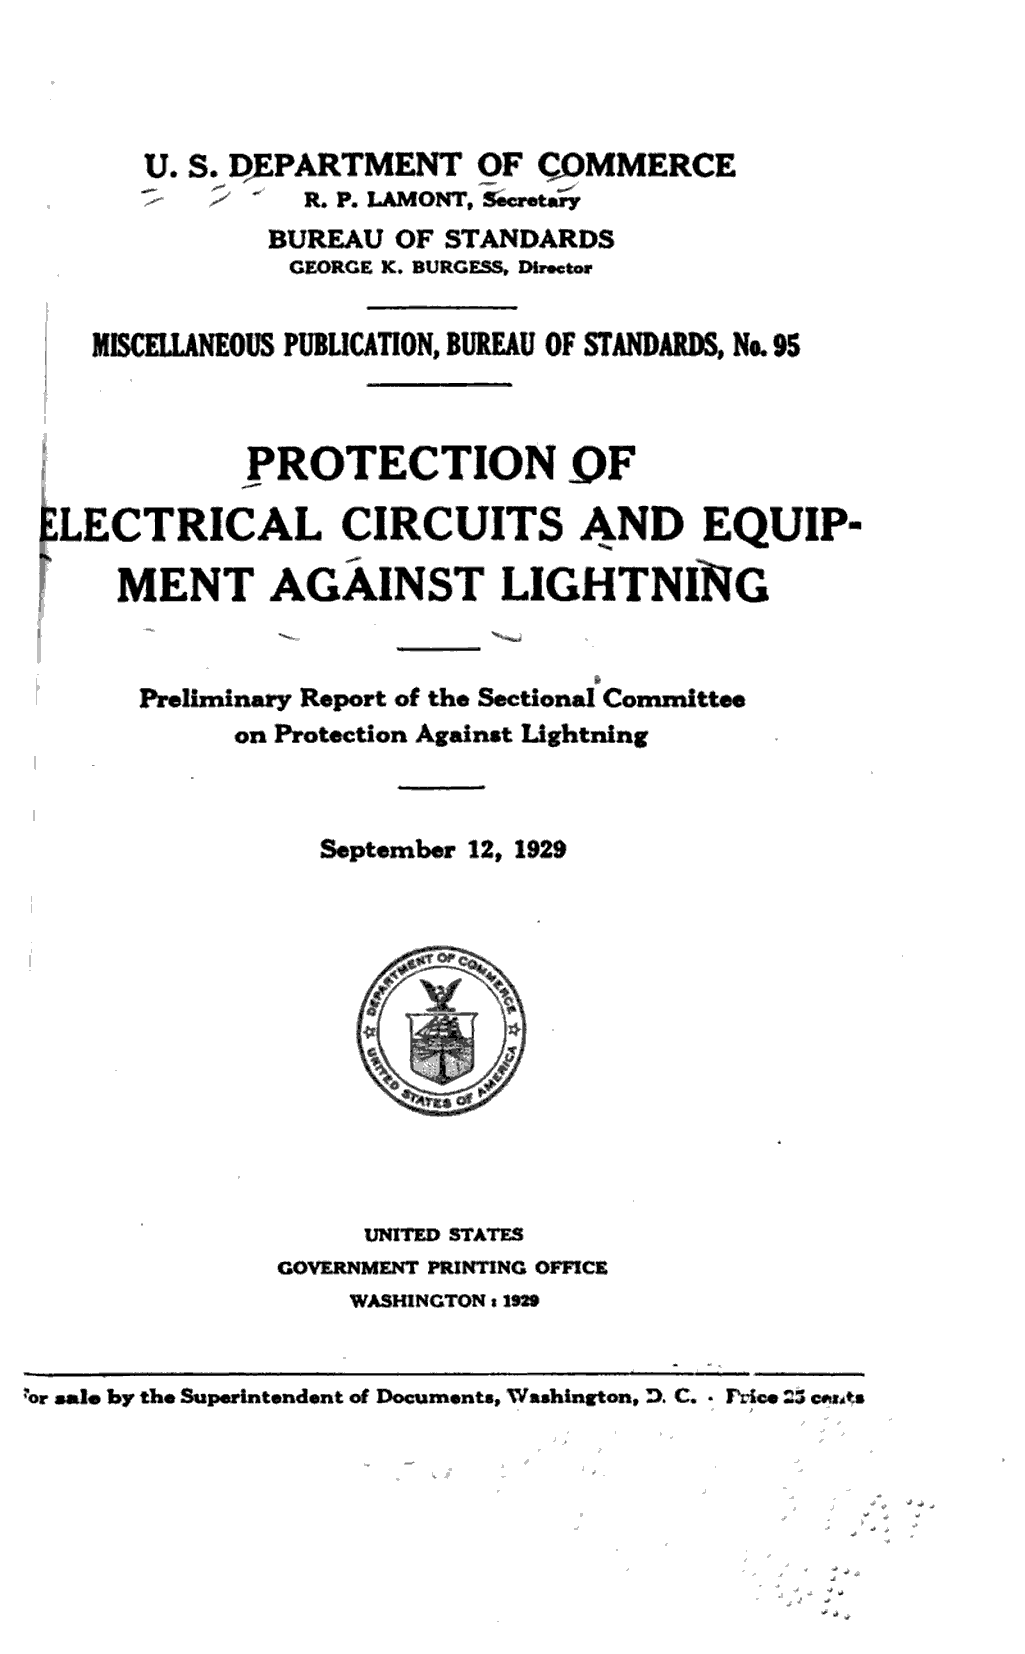 Protection of electrical circuits and equipment against lightning ...